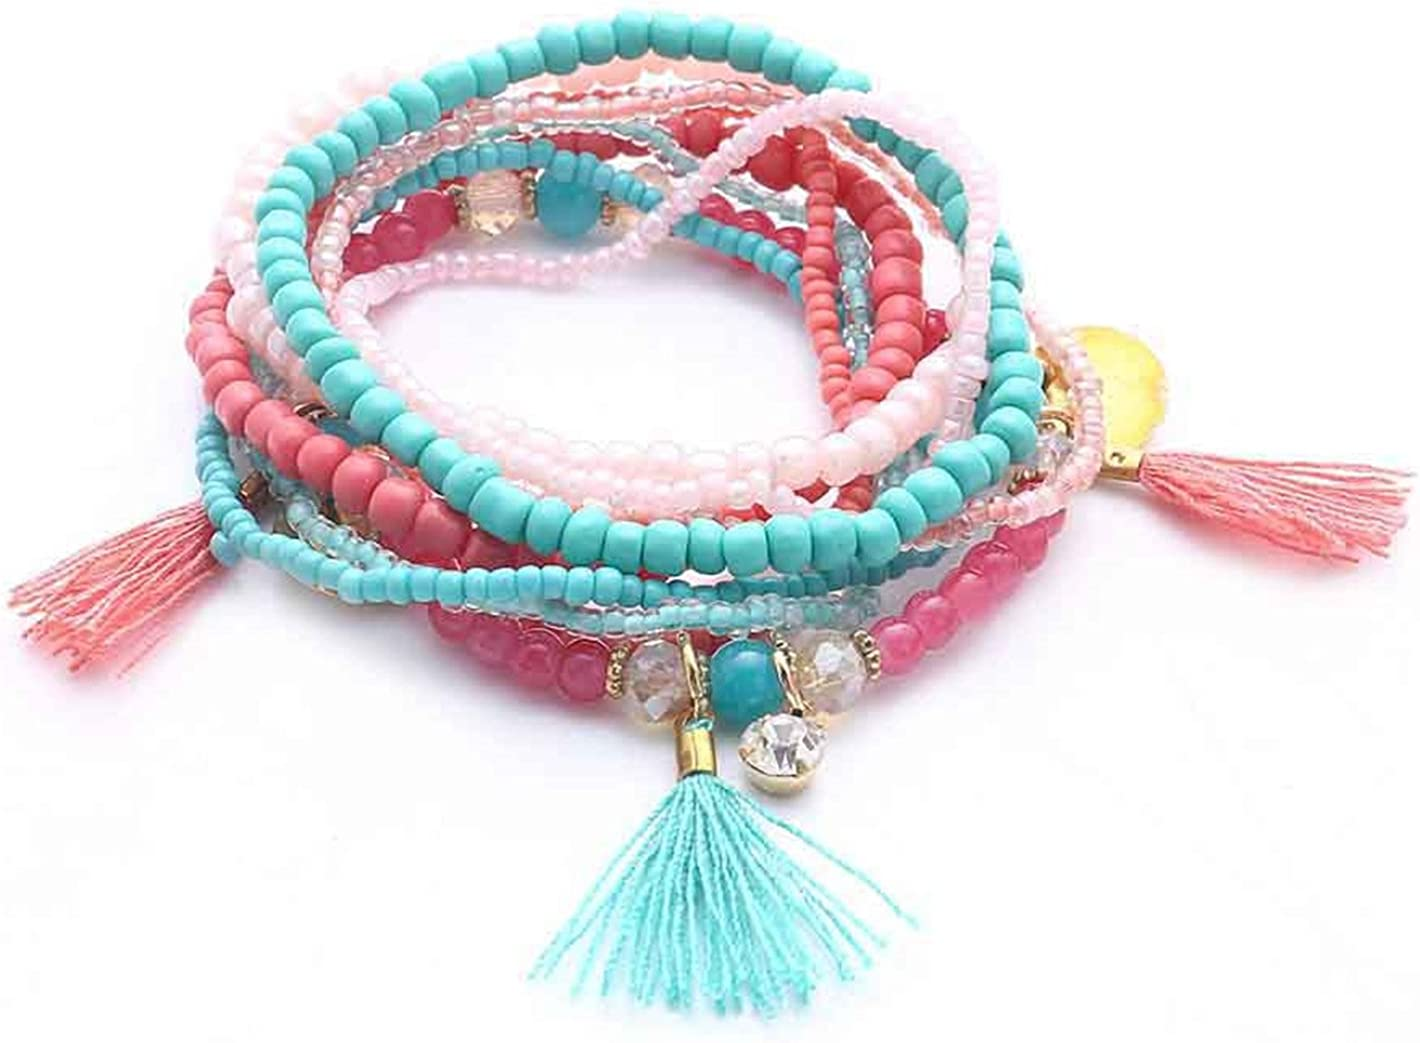 Green Bead  Multi layer wrap Around Bracelet with Tassel /& Charms